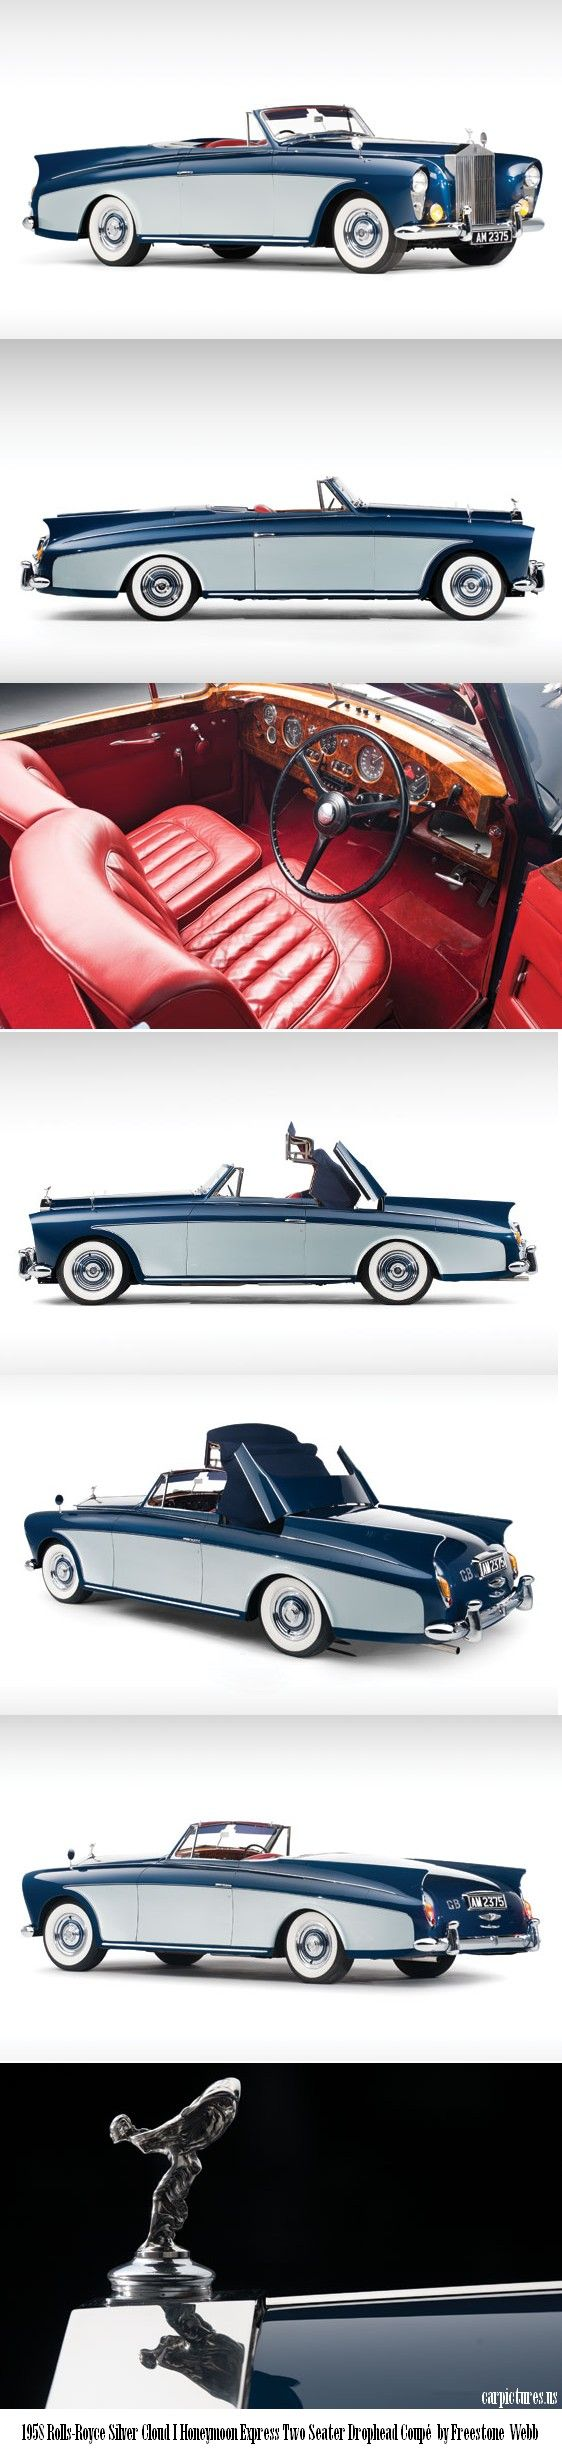 This is just a beautiful vehicle. This would be a dream to own. 1958 Rolls-Royce Silver Cloud Honeymoon Express Two Seater Drophead Coupé. by: Freestone Webb